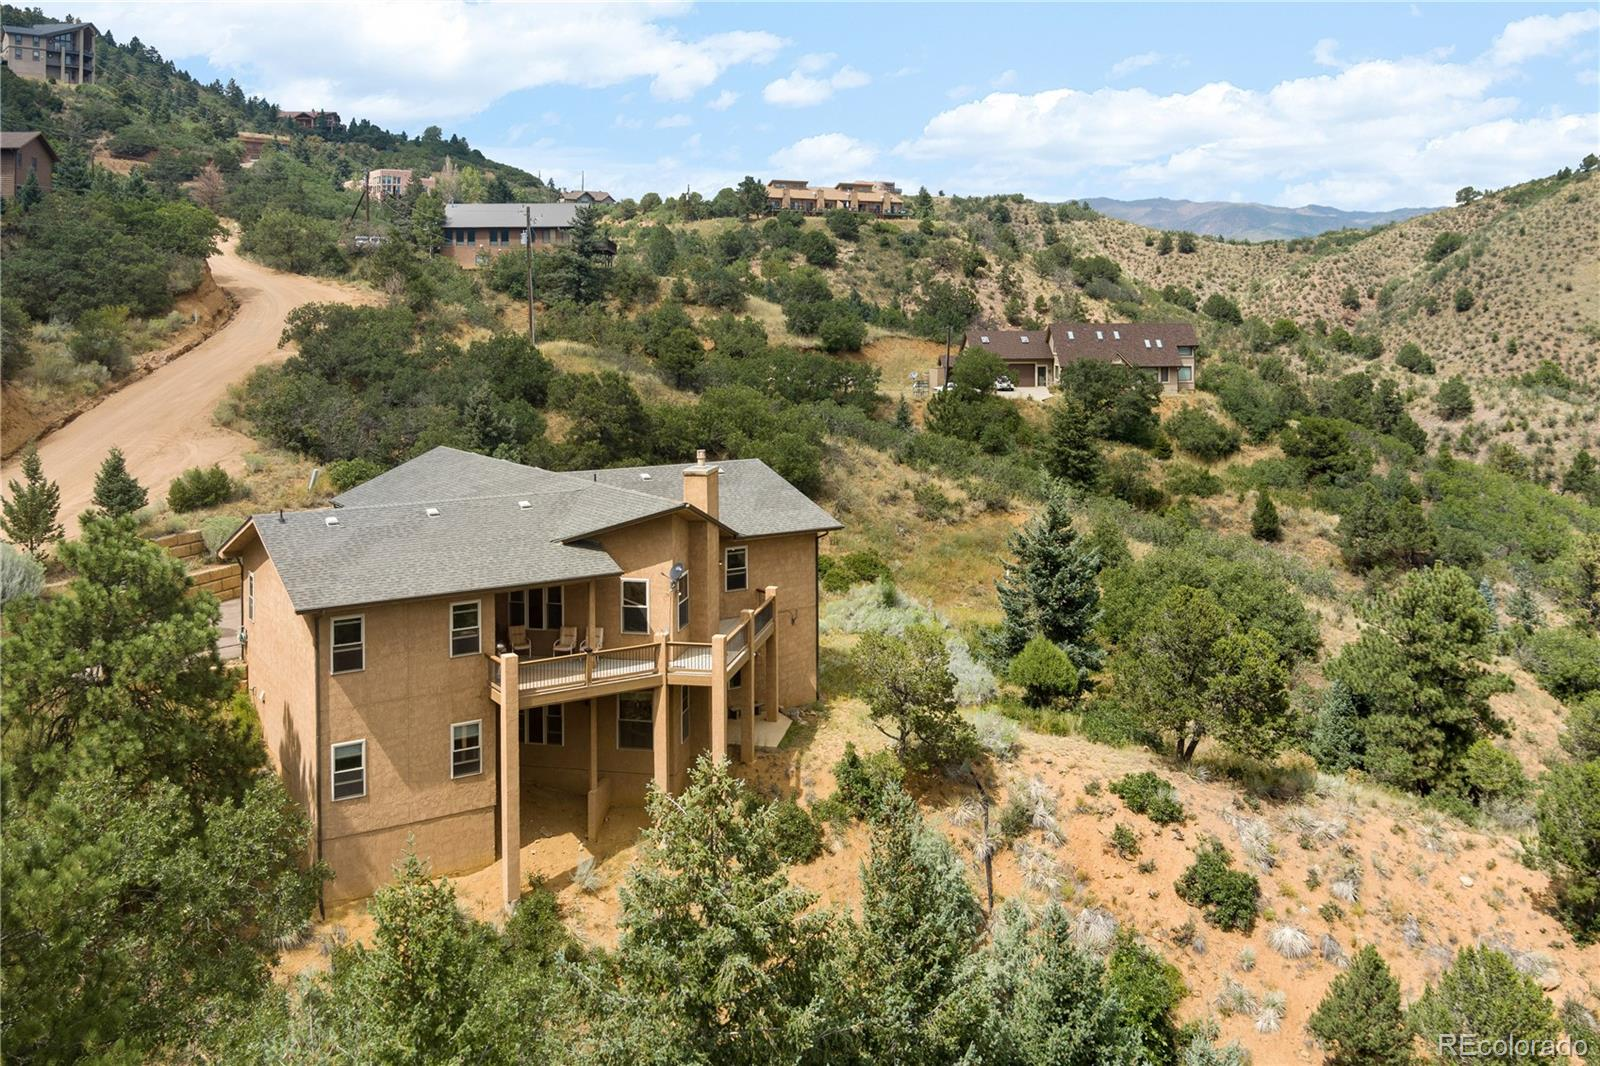 Massive Price Reduction! Welcome to Crystal Park! This is the greatest value for dollar in the whole area. Check out our video! https://youtu.be/ZS9AIw8Z2Uc This prestigious home is a short drive from downtown Colorado Springs but it feels like a world away. The views are spectacular!  Crystal Park's gated community offers so much! A seasonally heated pool, private pond for fishing, and world class views.  The home itself is a very large 4,040 square feet and has amenities like a gigantic walk in closet in the master bedroom, and a stunning back deck area. The home is easily livable in it's current configuration, but if you want to take it to the next level then bring your contractor and plan a brand new kitchen! Act quickly, at this price per square foot we don't expect this one to last!